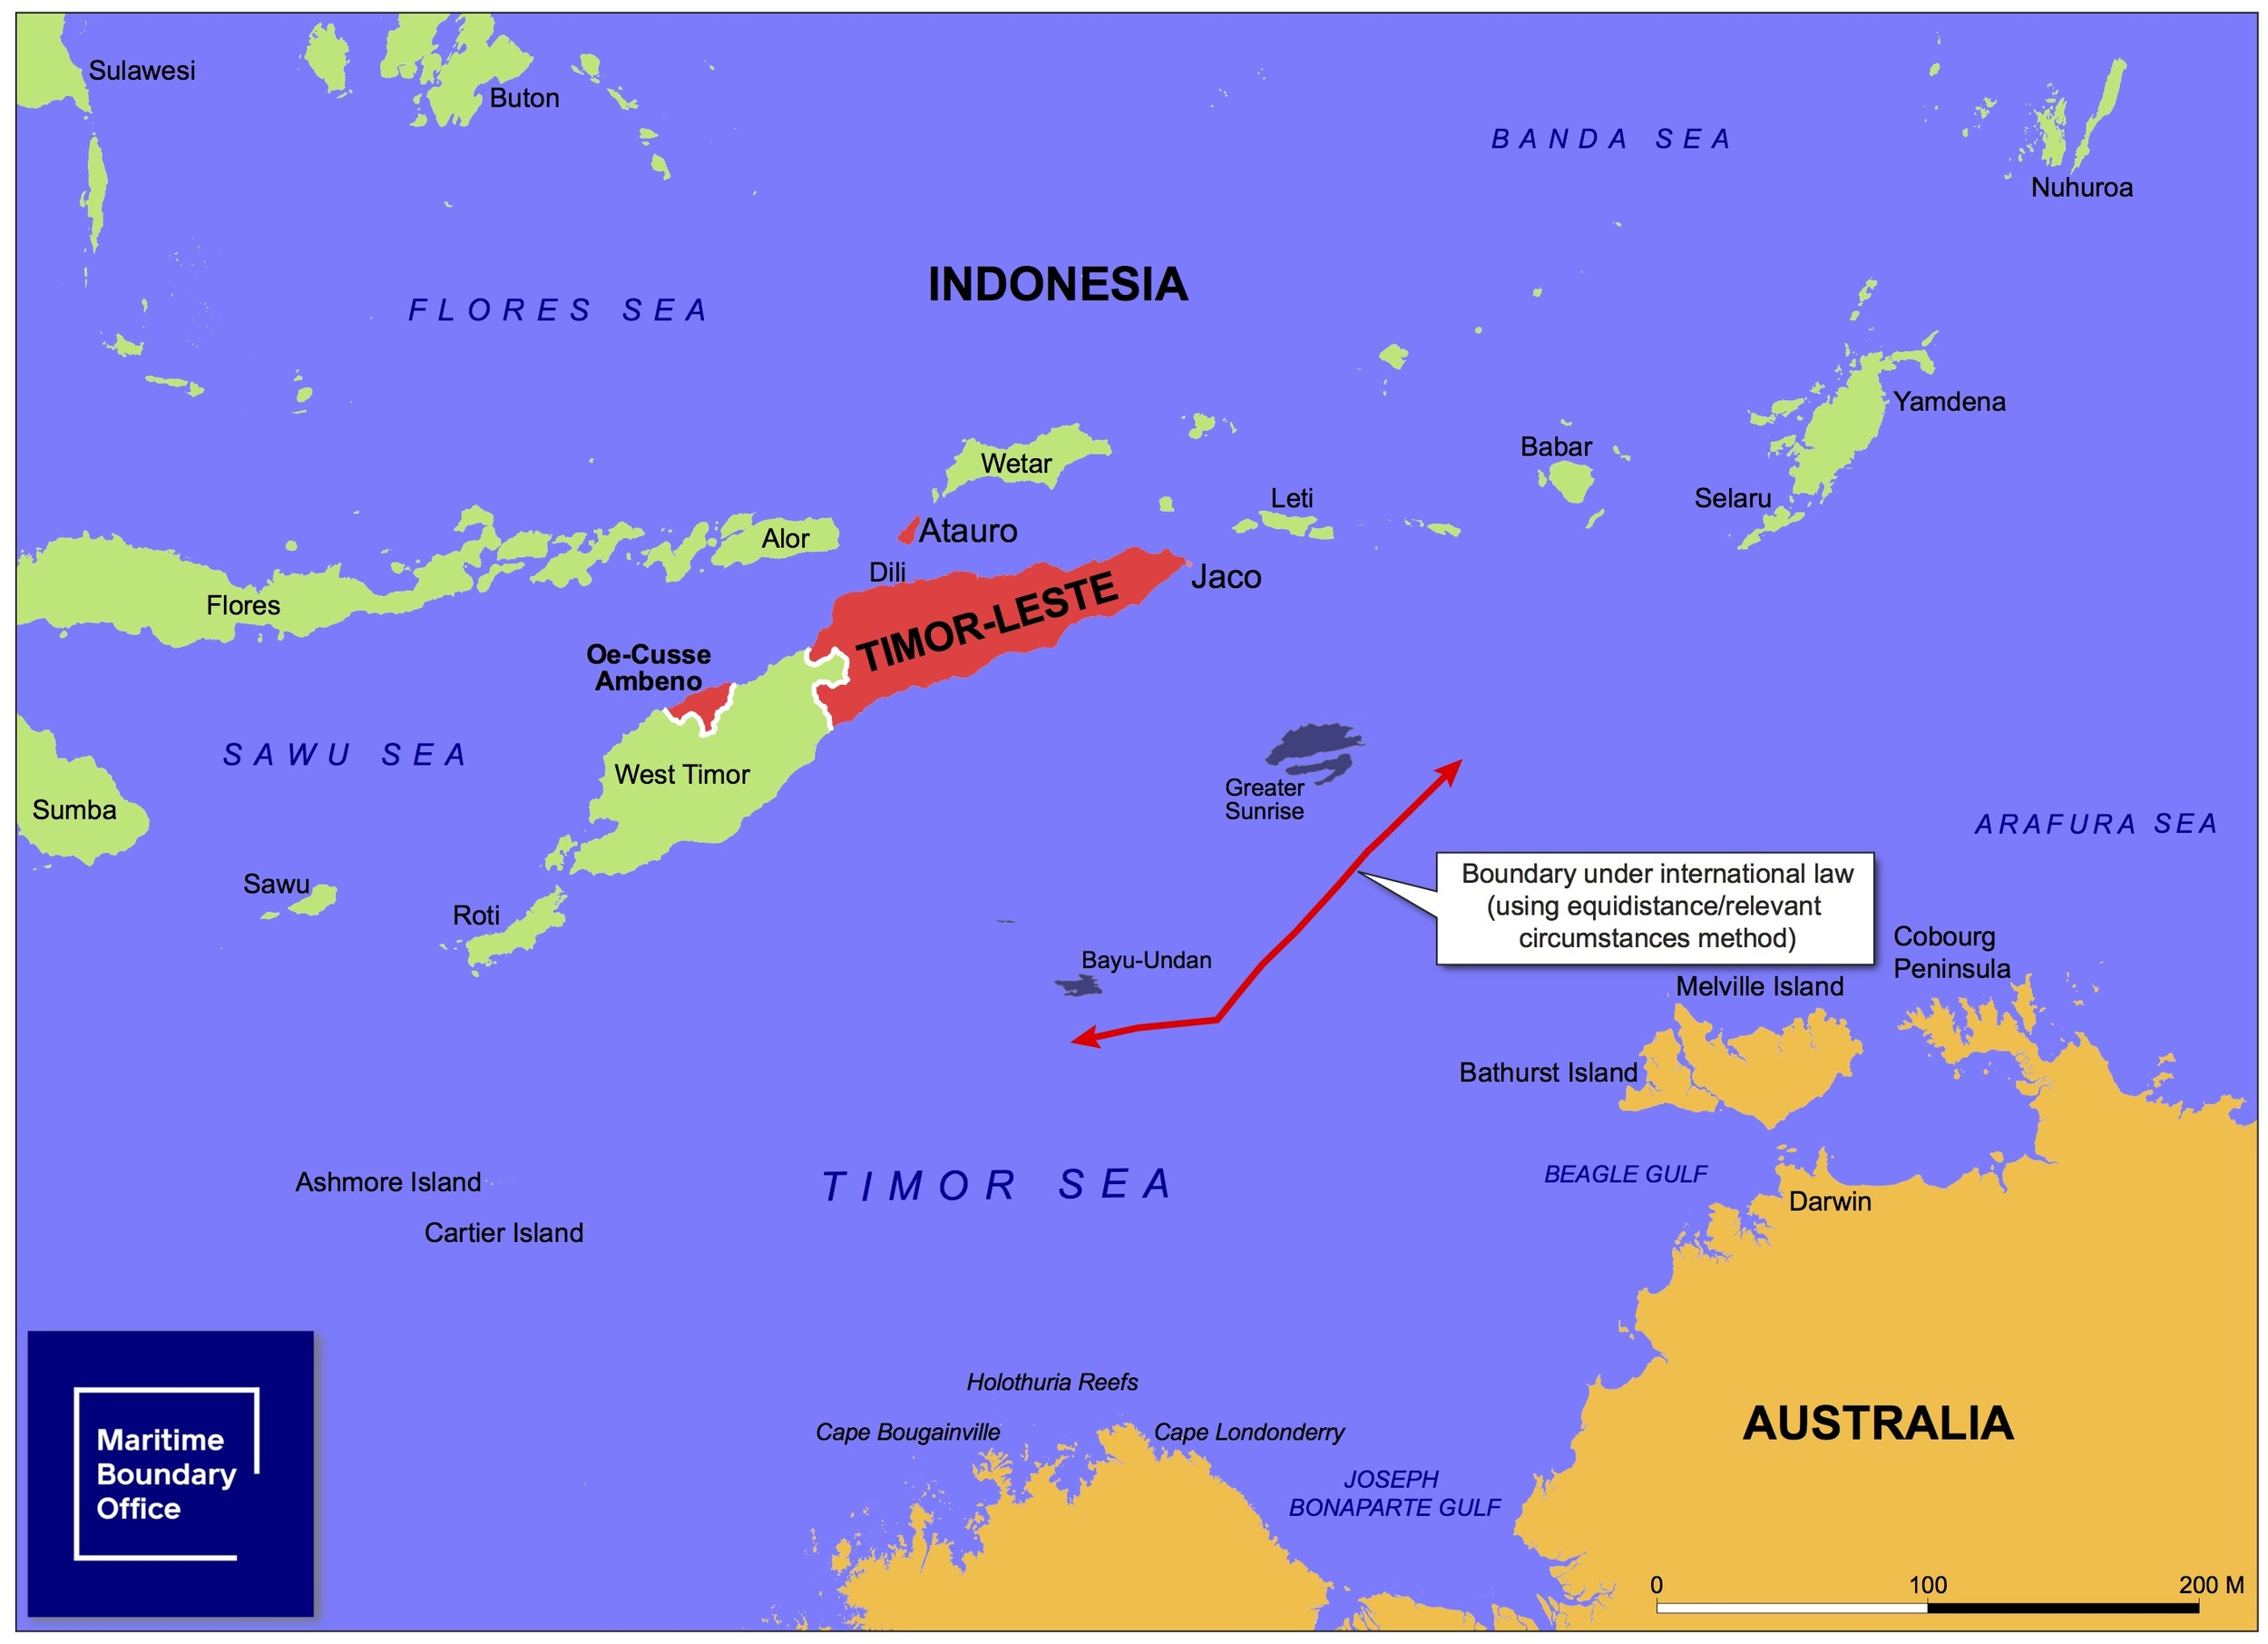 Source: Timor-Leste's Maritime Boundary Office. Click on image for a PDF version